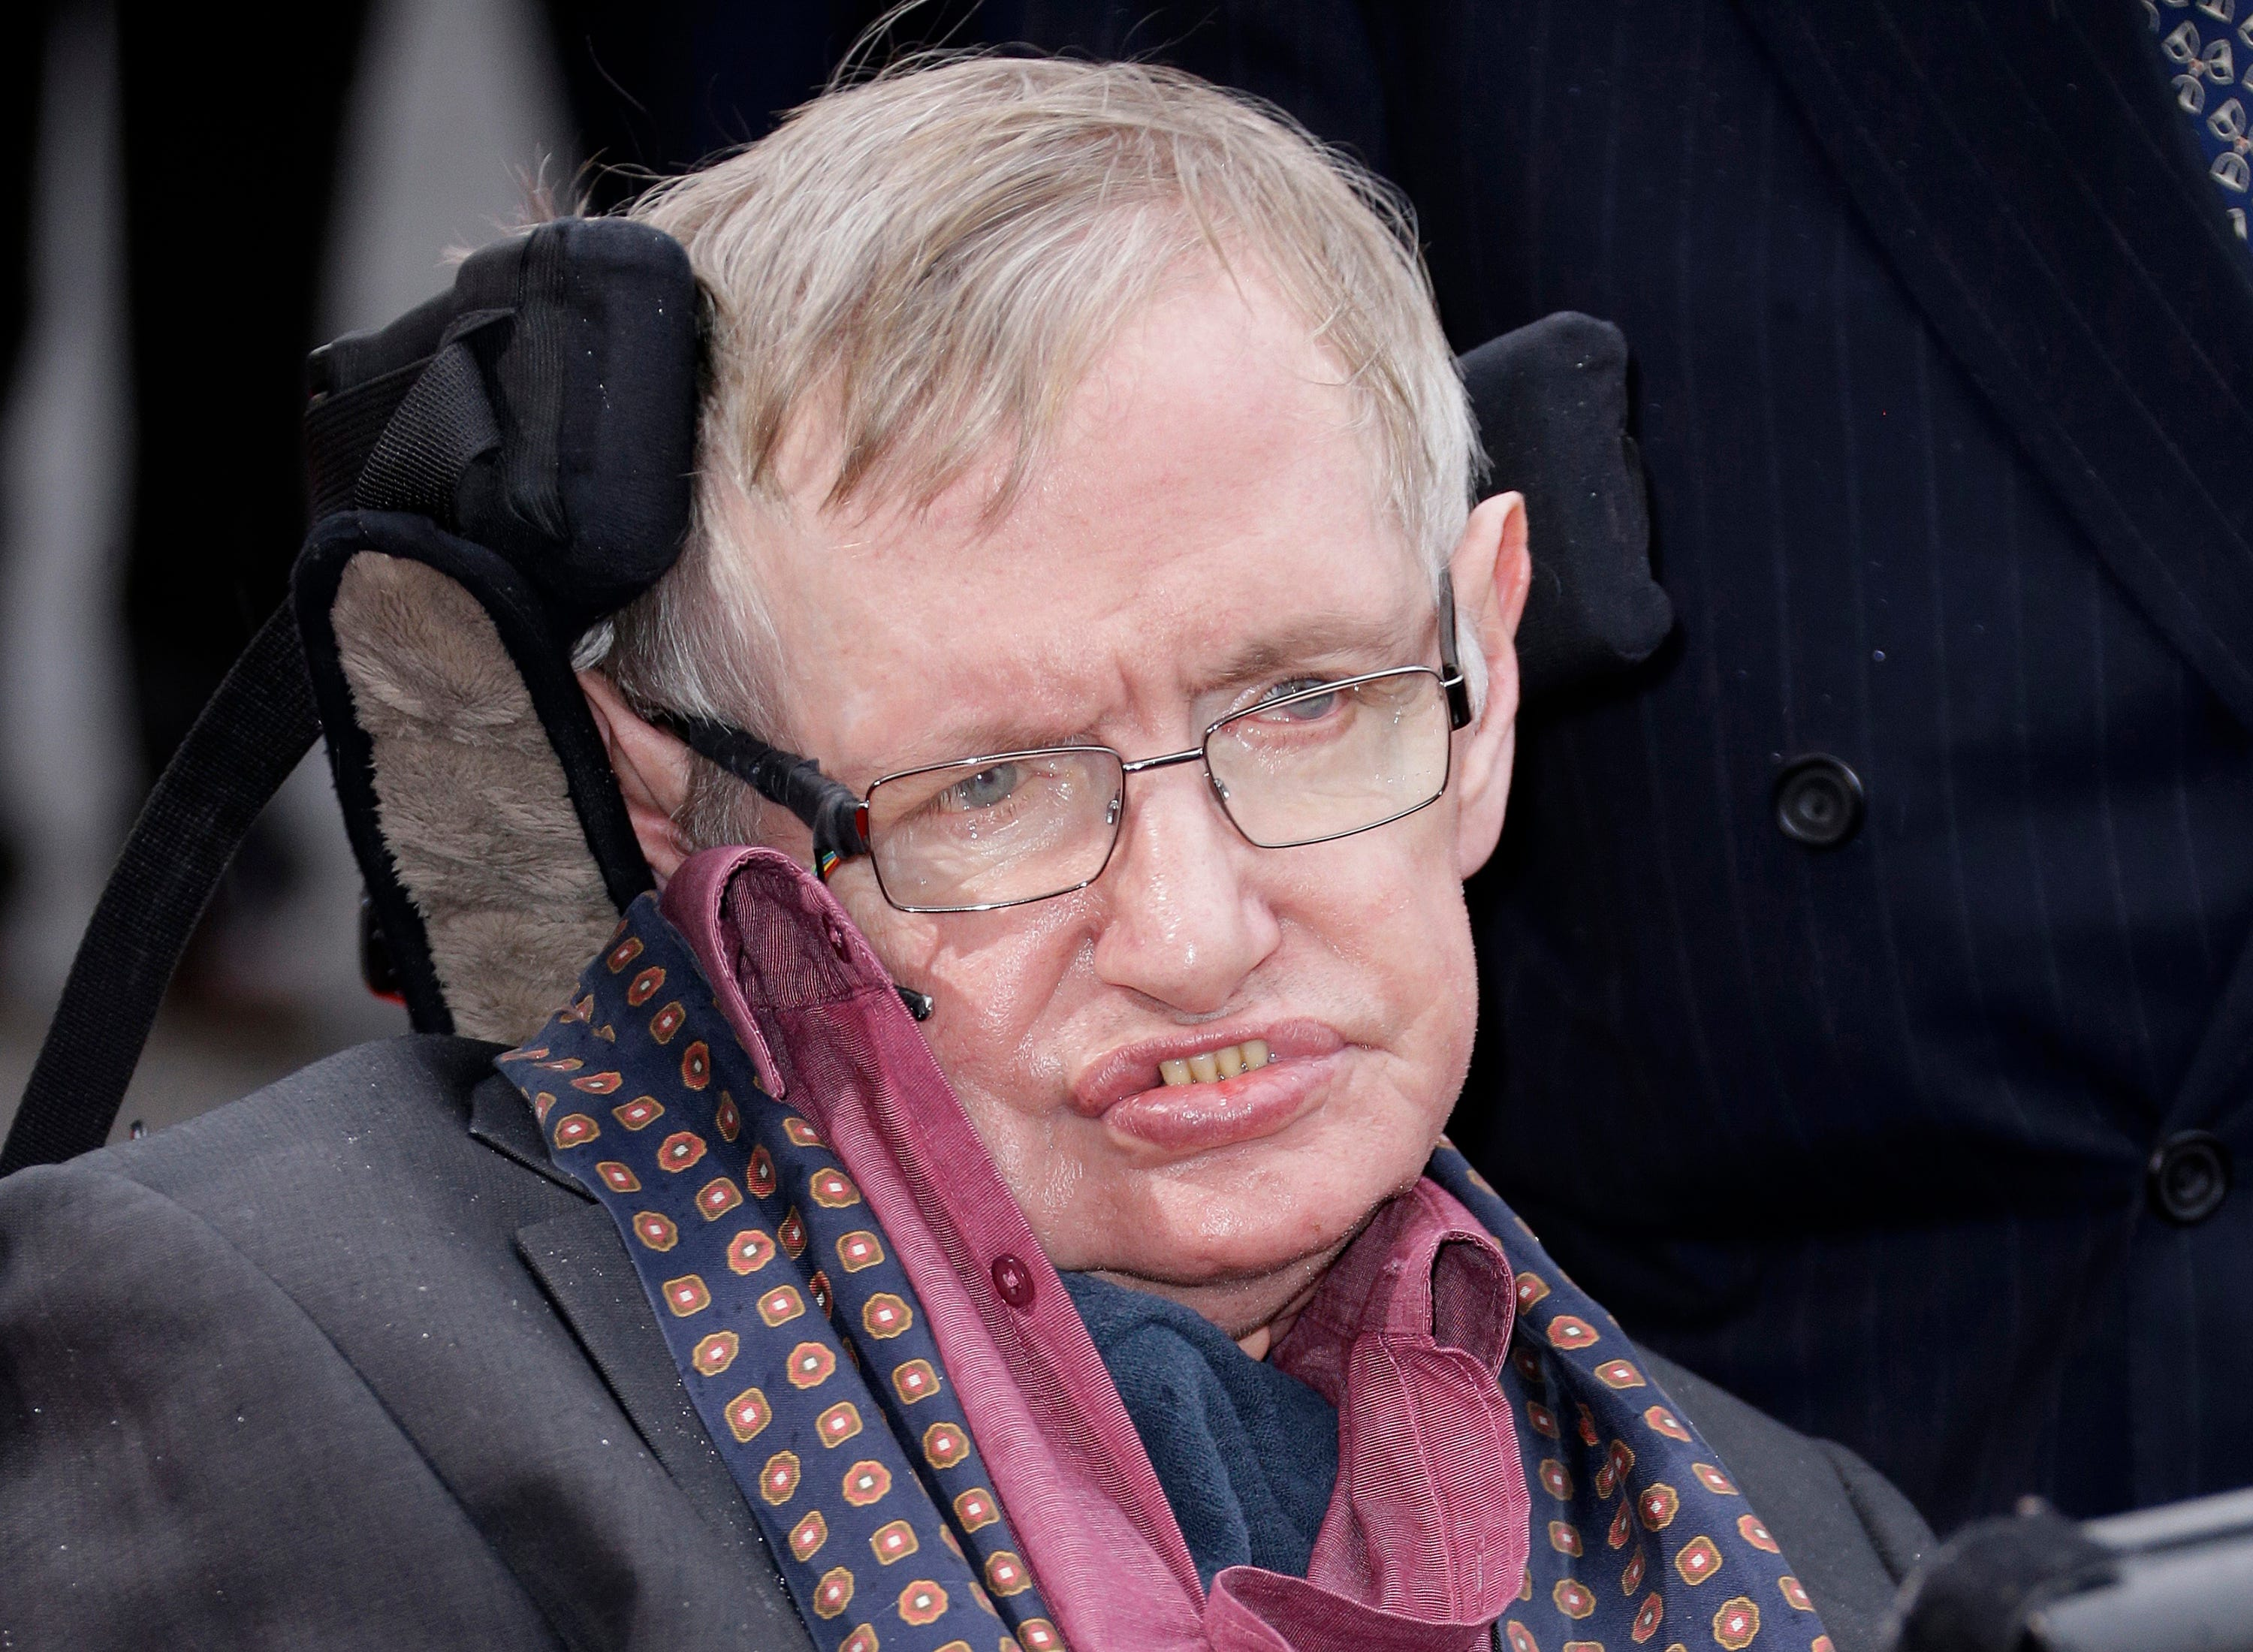 Stephen Hawking warns that AI, 'superhumans' could wipe humanity in posthumous book | Clarion Ledger